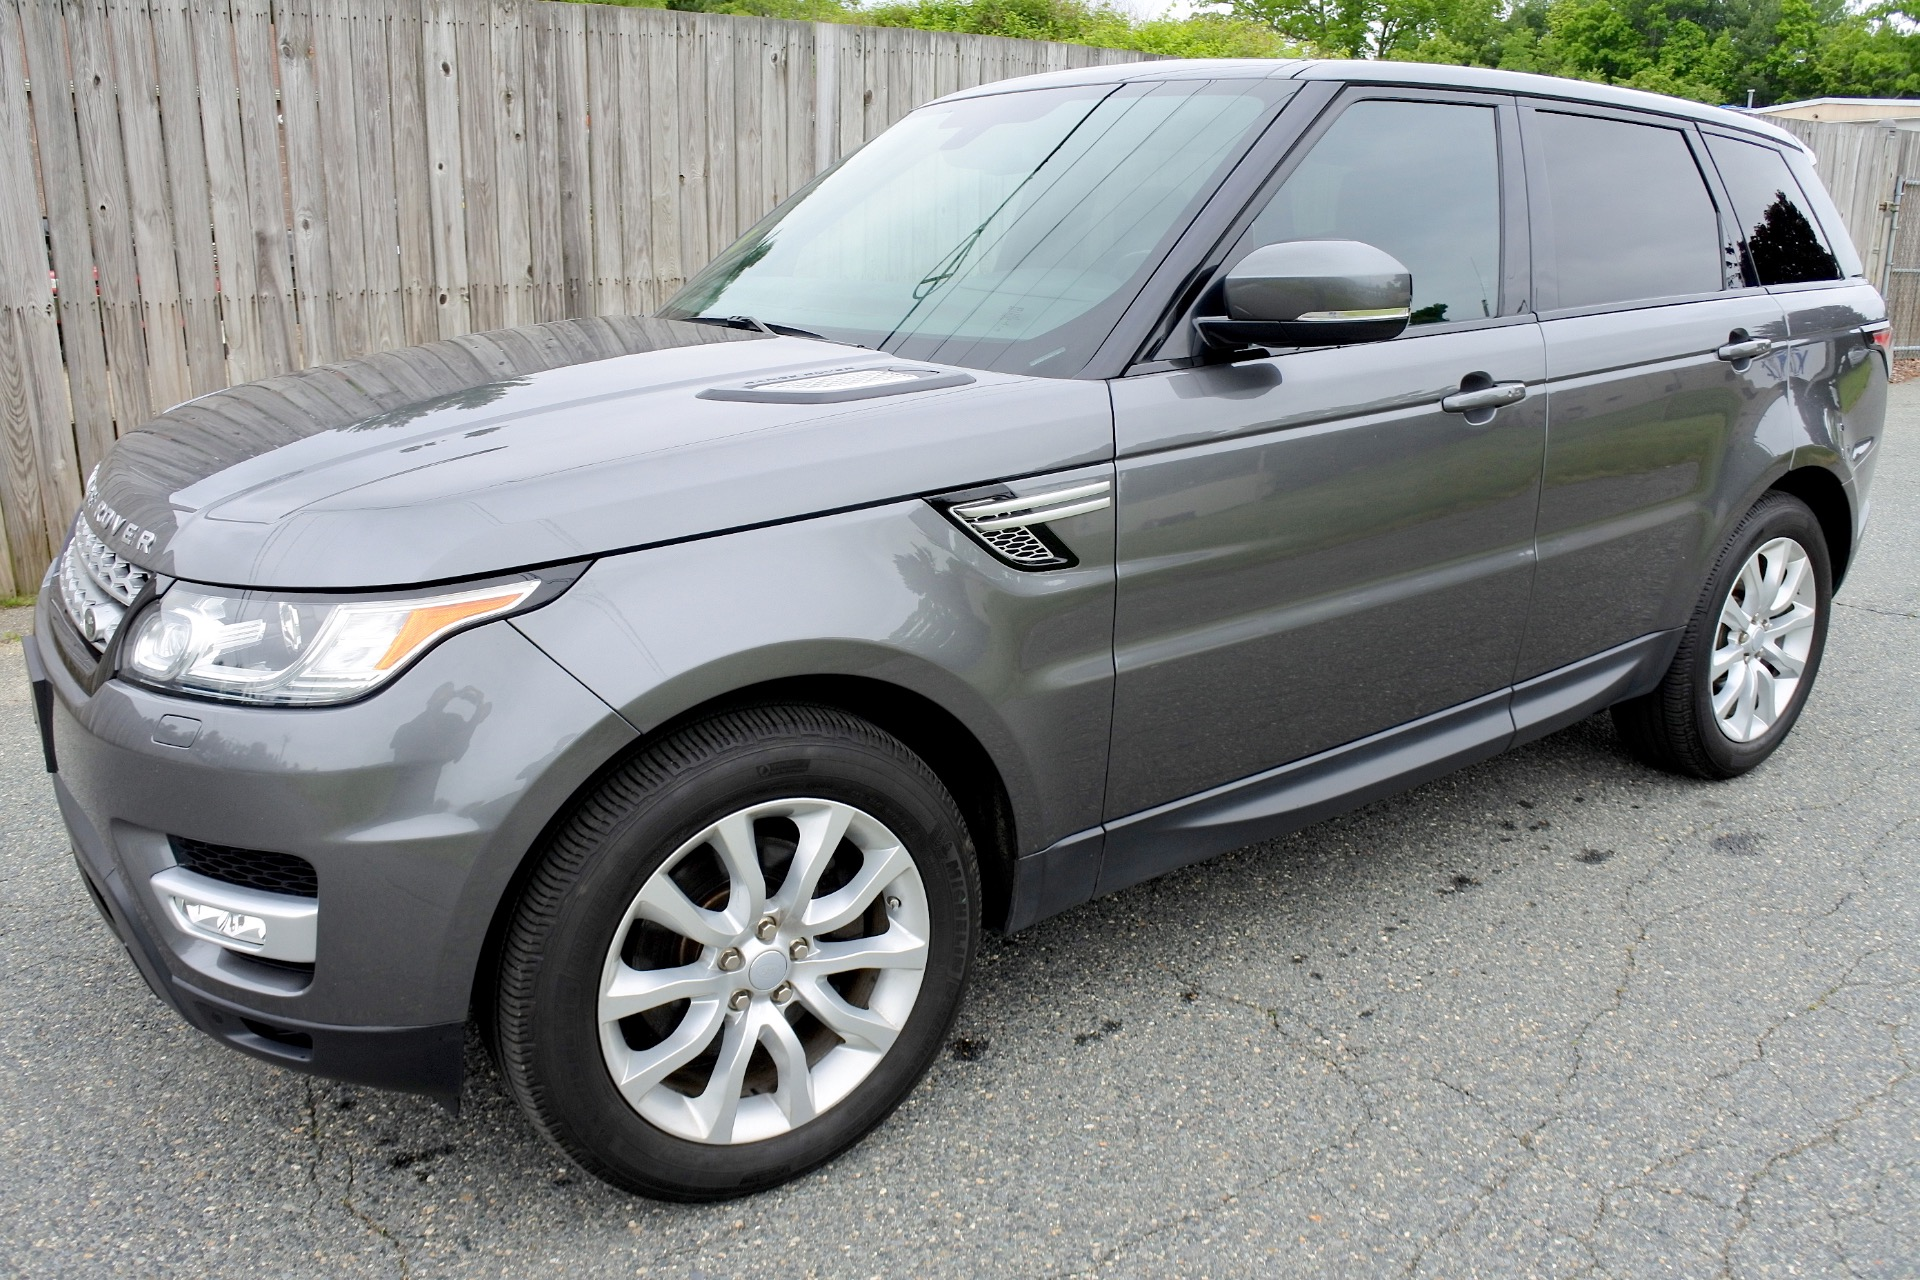 Used 2015 Land Rover Range Rover Sport HSE Used 2015 Land Rover Range Rover Sport HSE for sale  at Metro West Motorcars LLC in Shrewsbury MA 1